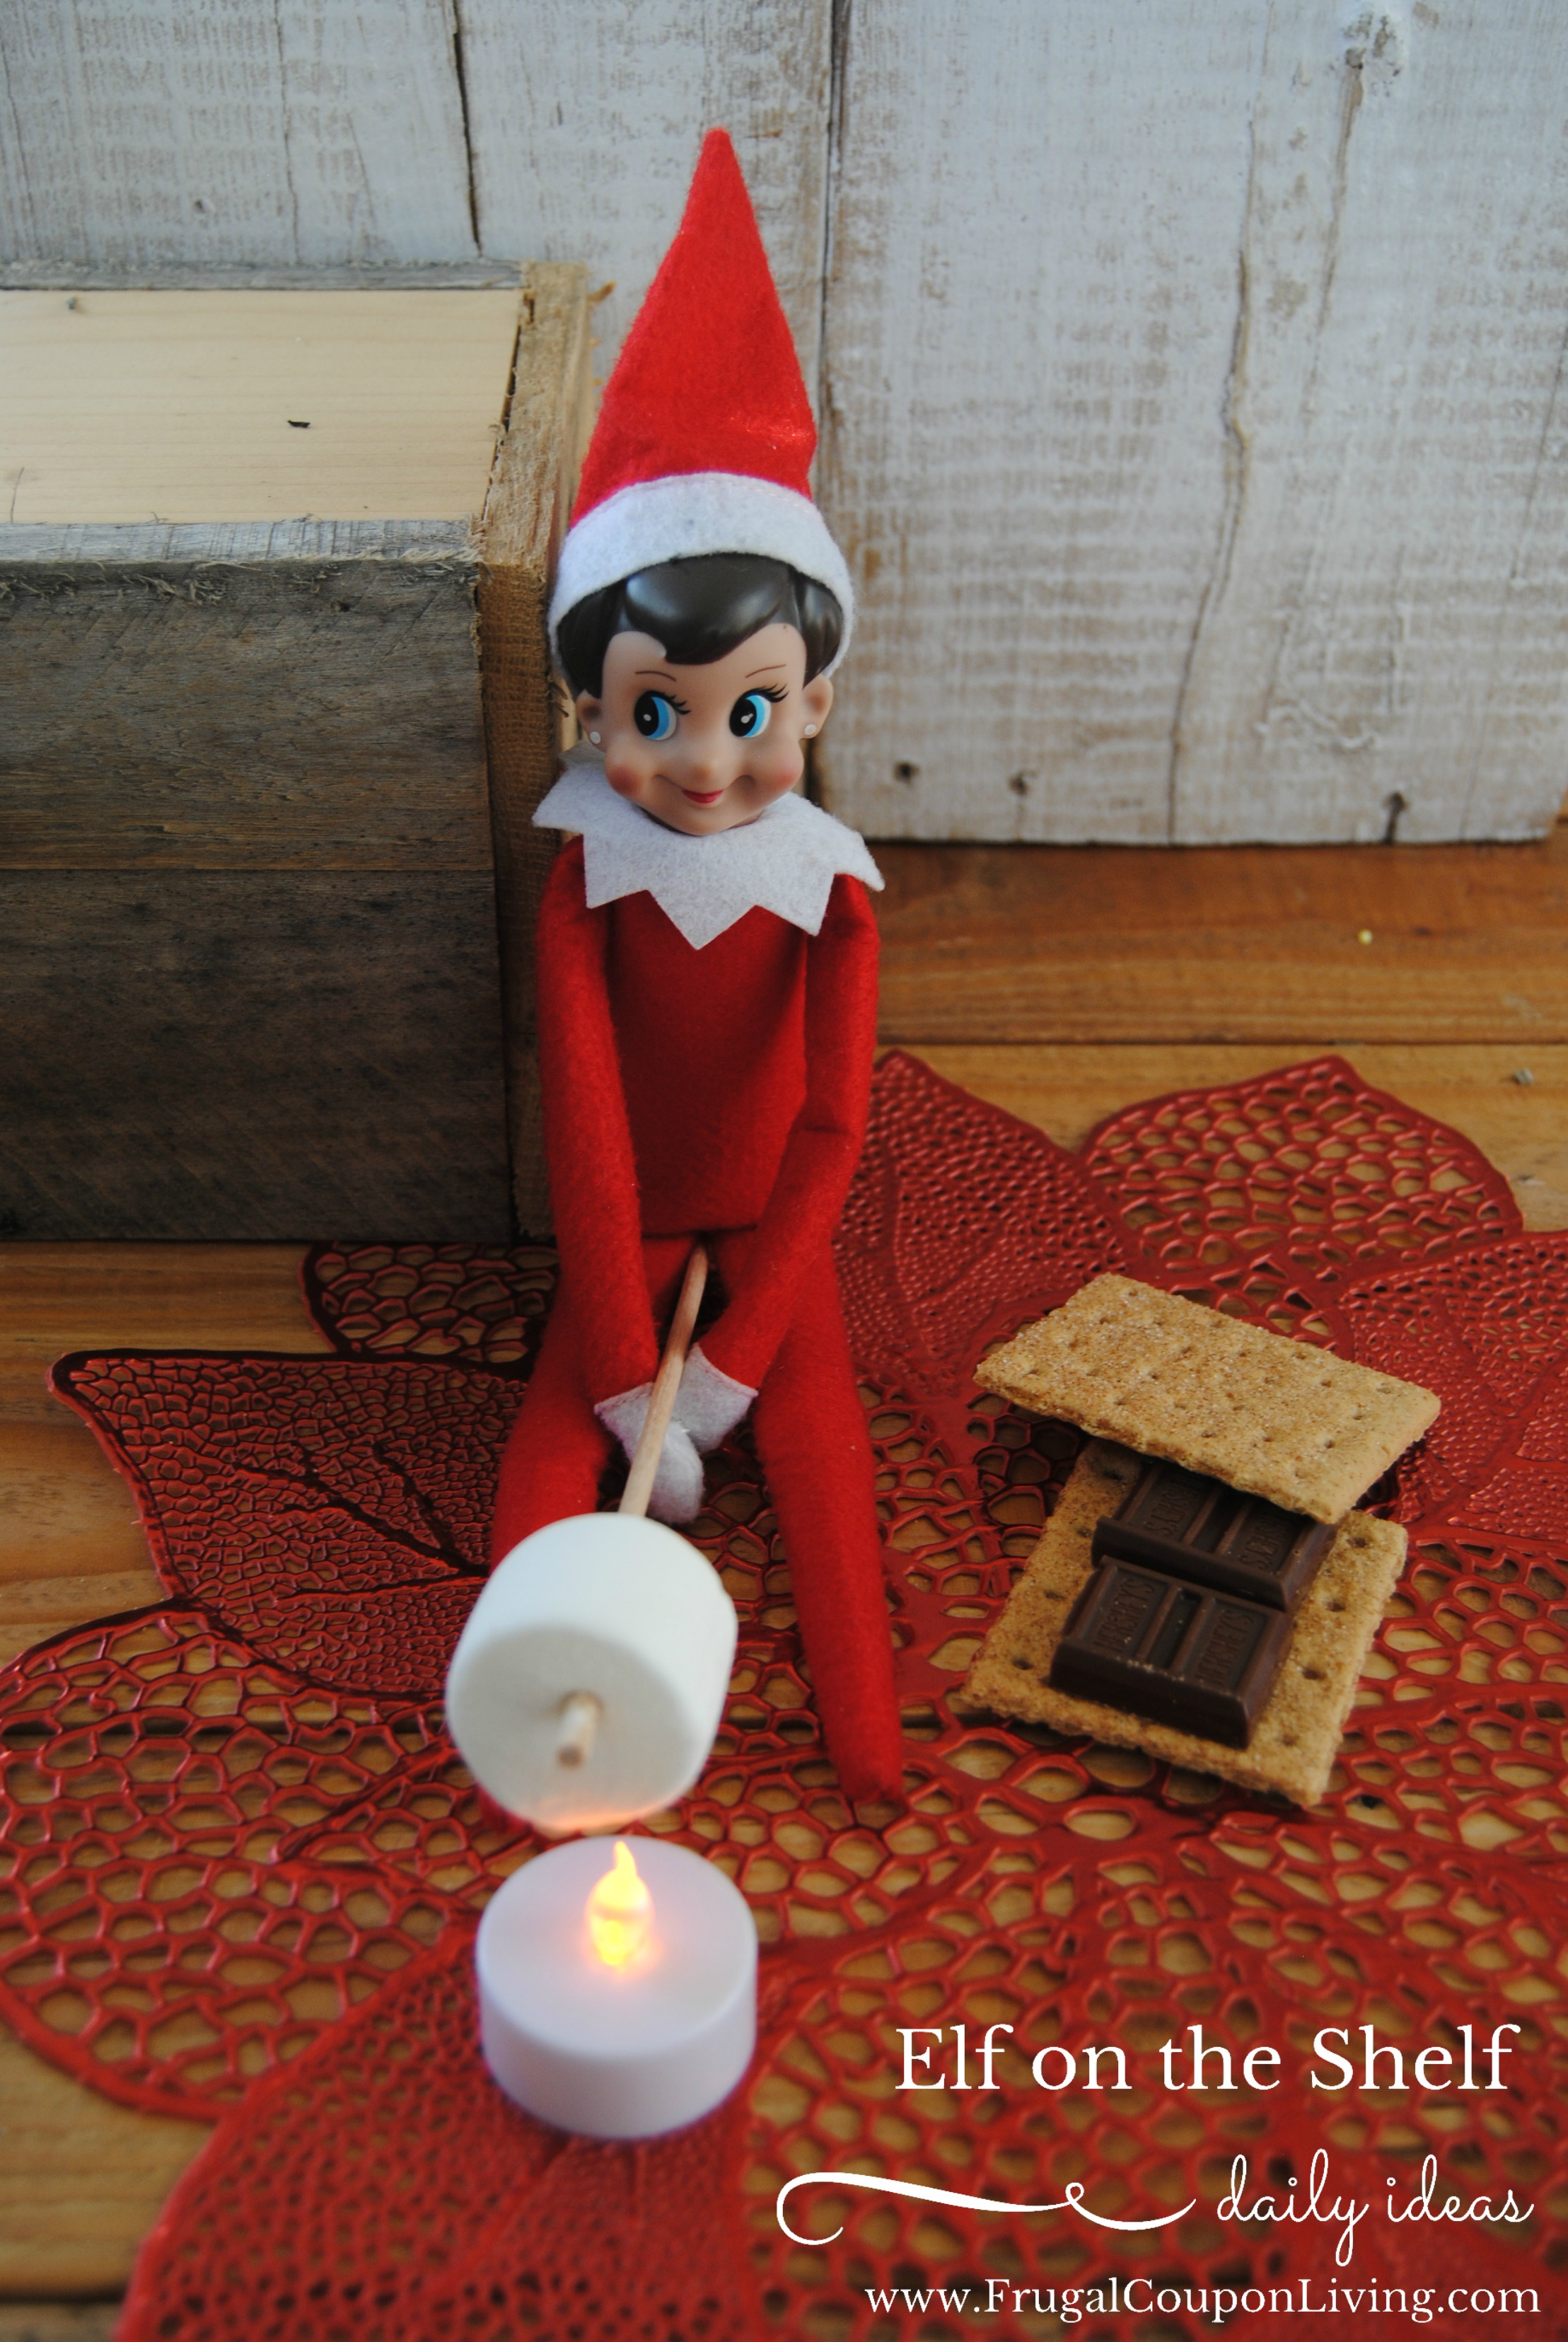 25 Fun Elf on the Shelf Ideas for Each Day Leading Up to Christmas. No more 3 a.m. panics because you forgot to move him.